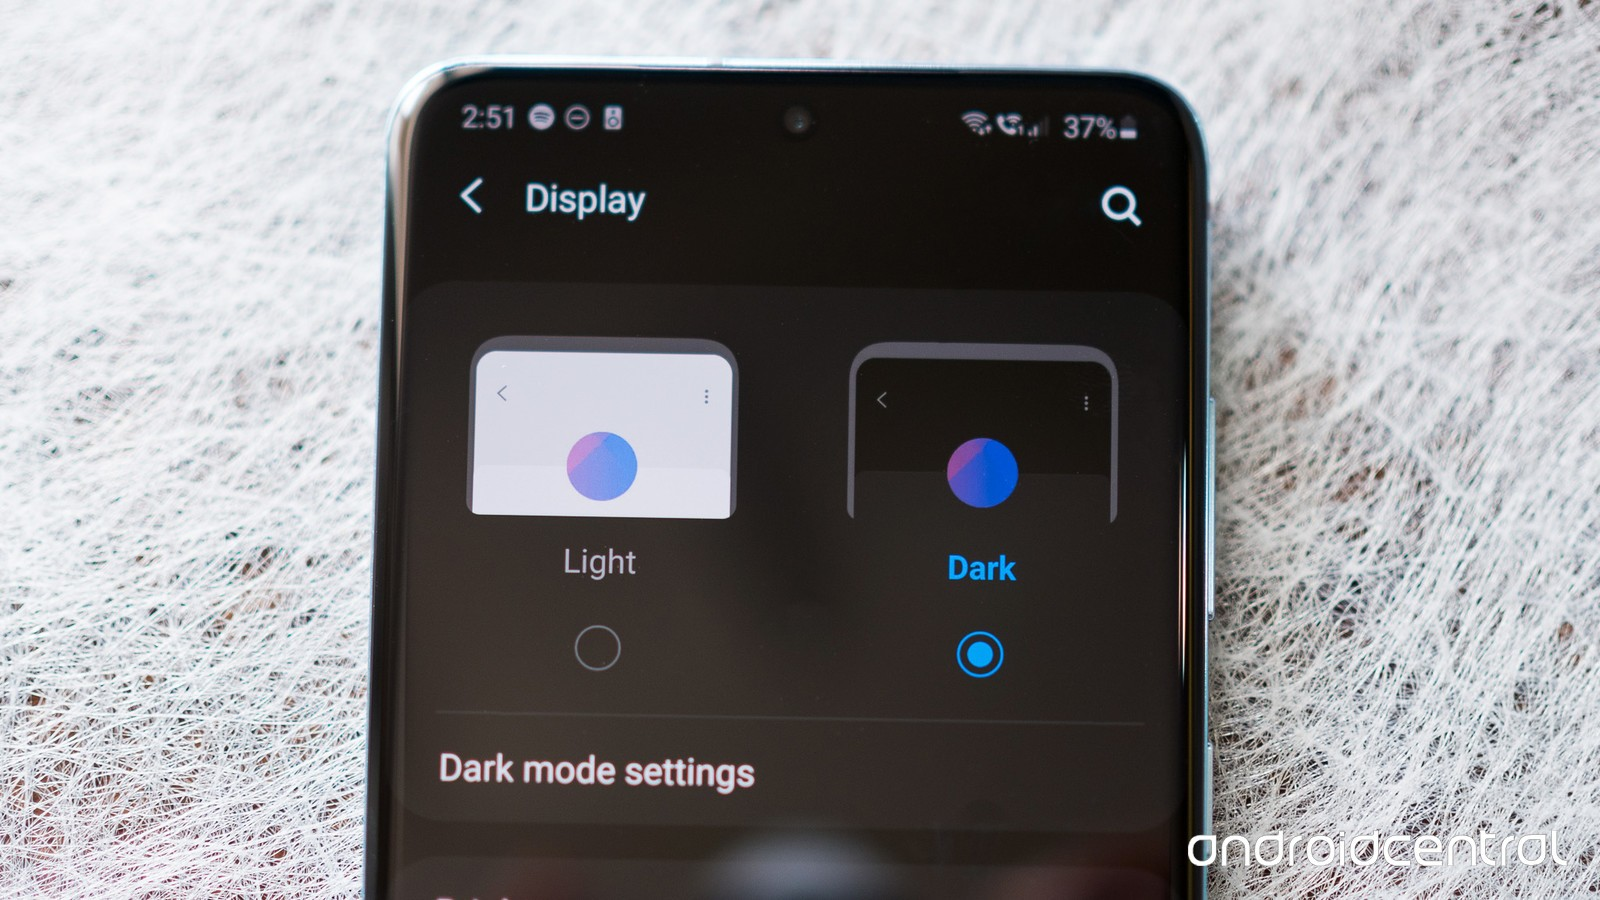 See How To Enable Dark Mode Feature On Samsung Galaxy S20.